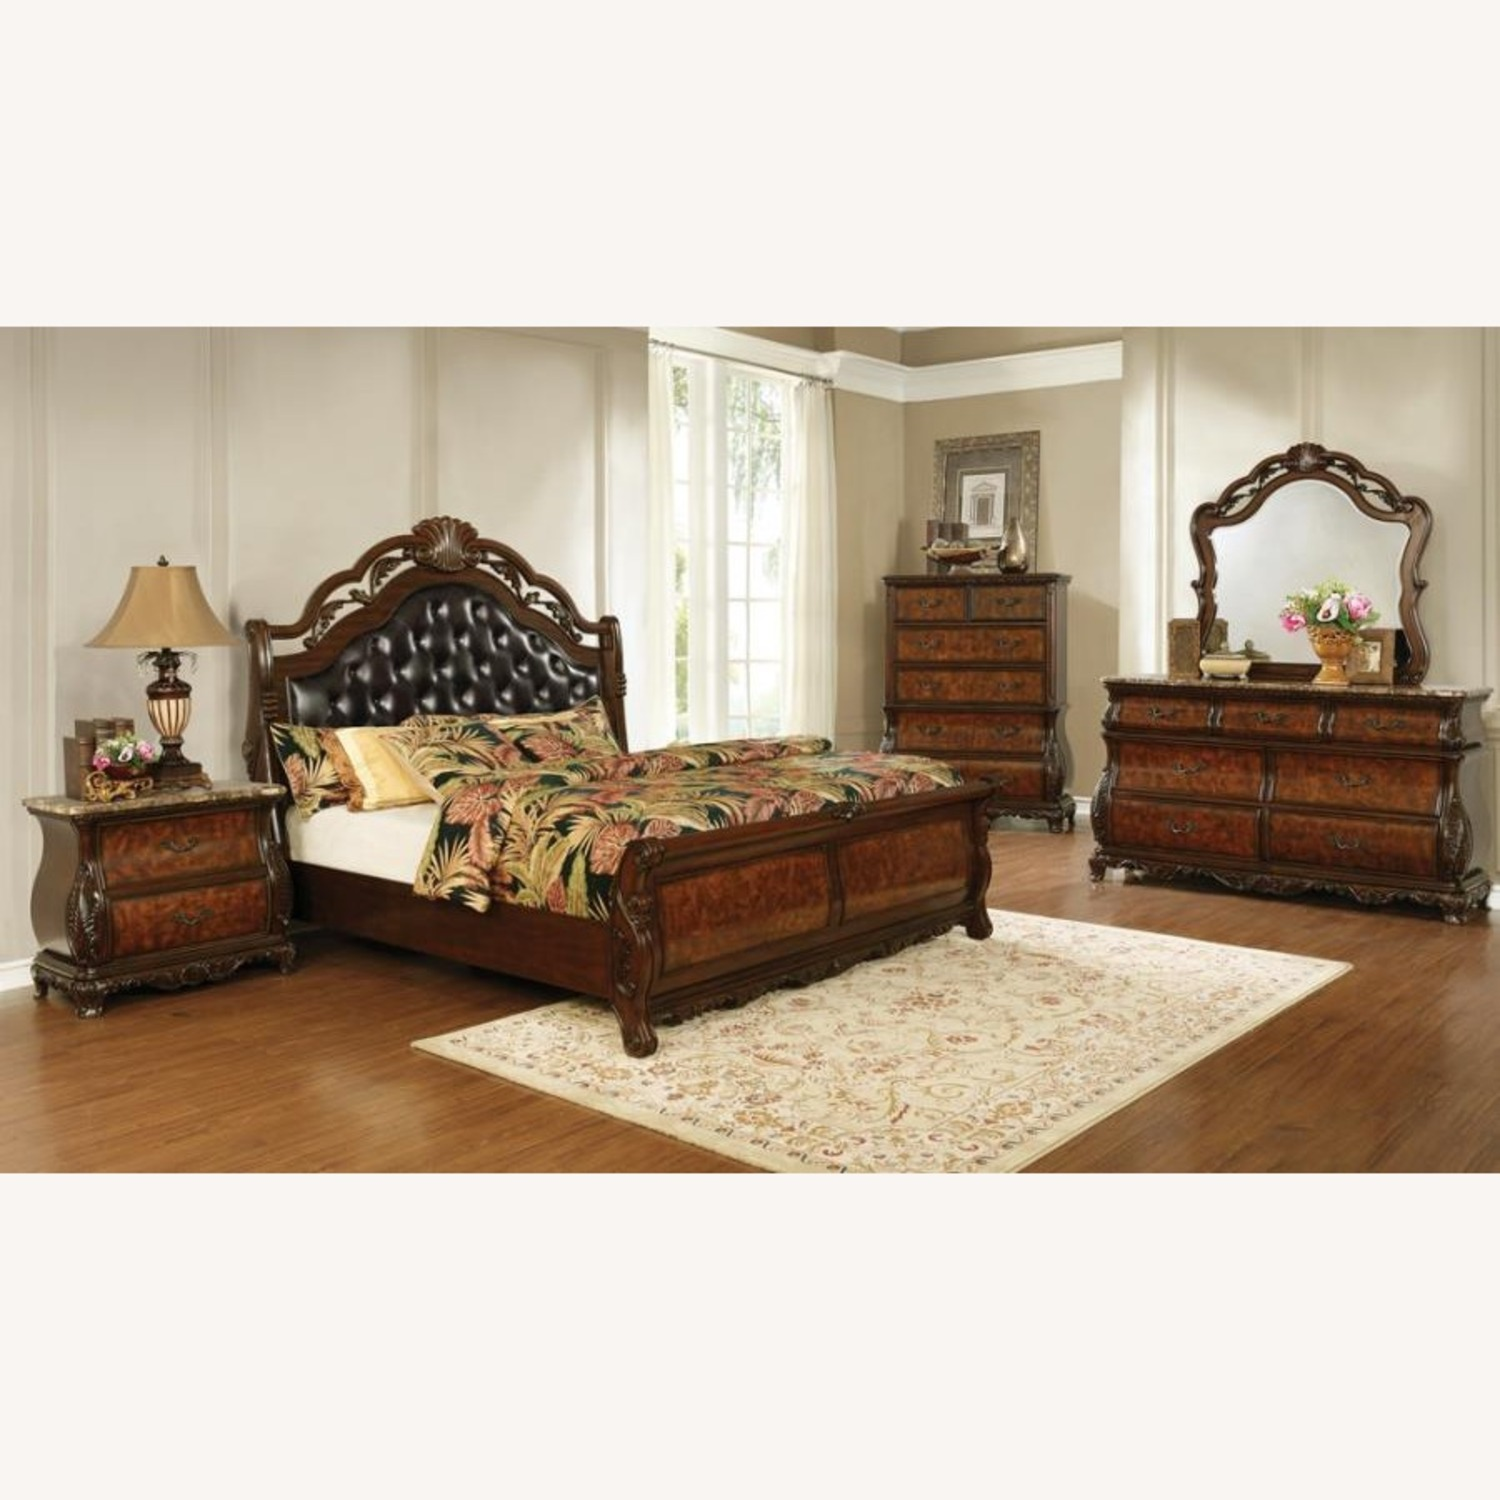 Queen Bed In Dark Brown Leatherette Finish - image-2